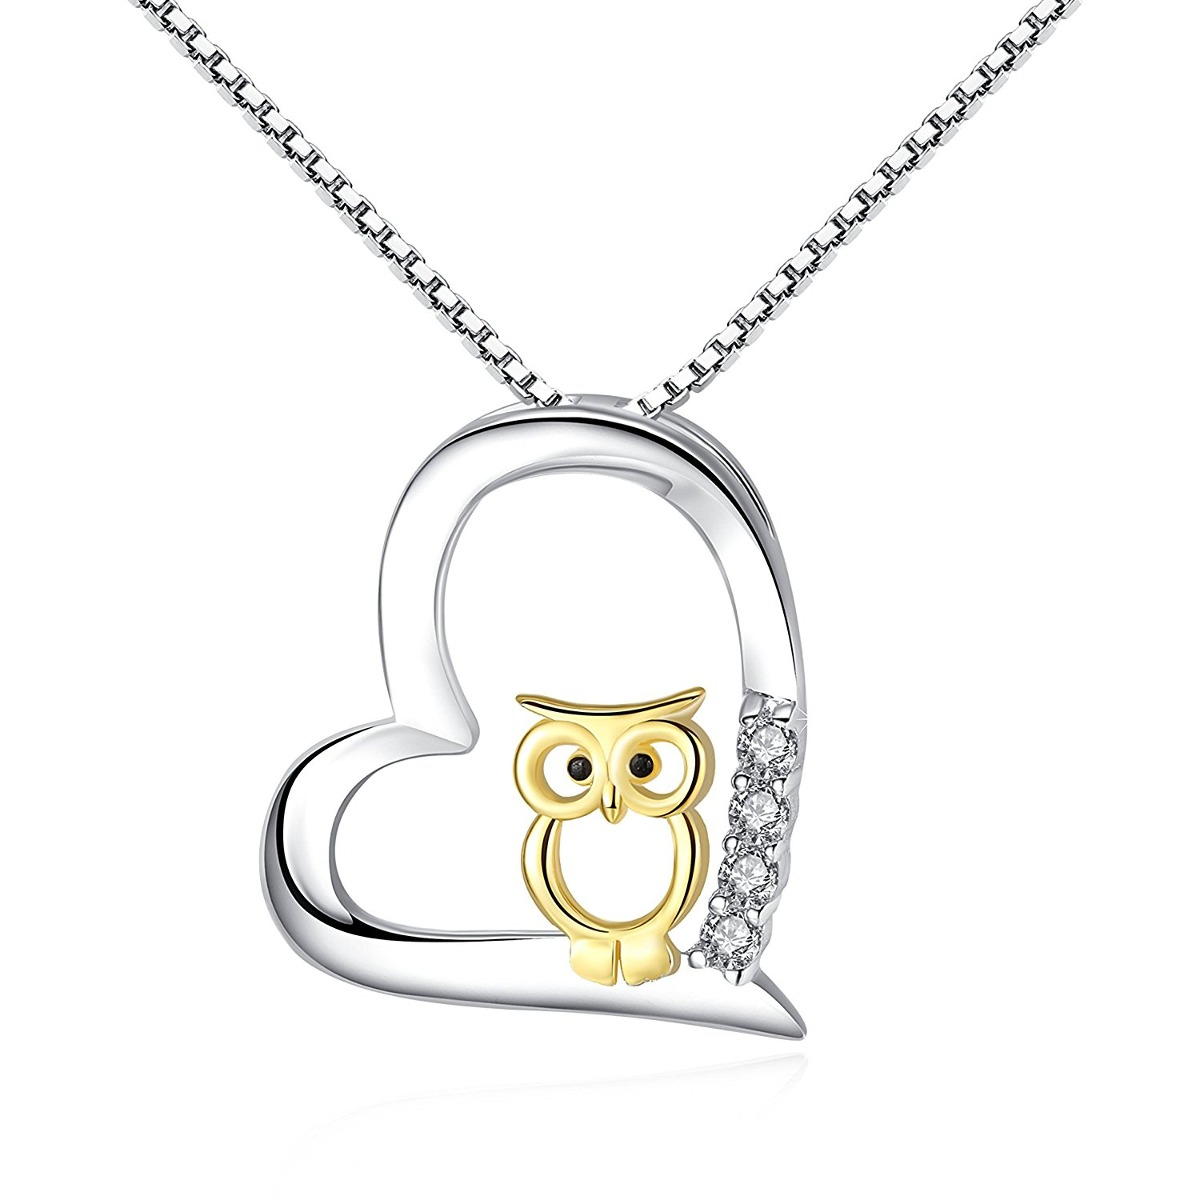 S925 sterlro owl pendant necklace valentines regalos mujeres s925 sterlro owl pendant necklace valentines regalos mujeres cargando zoom aloadofball Image collections